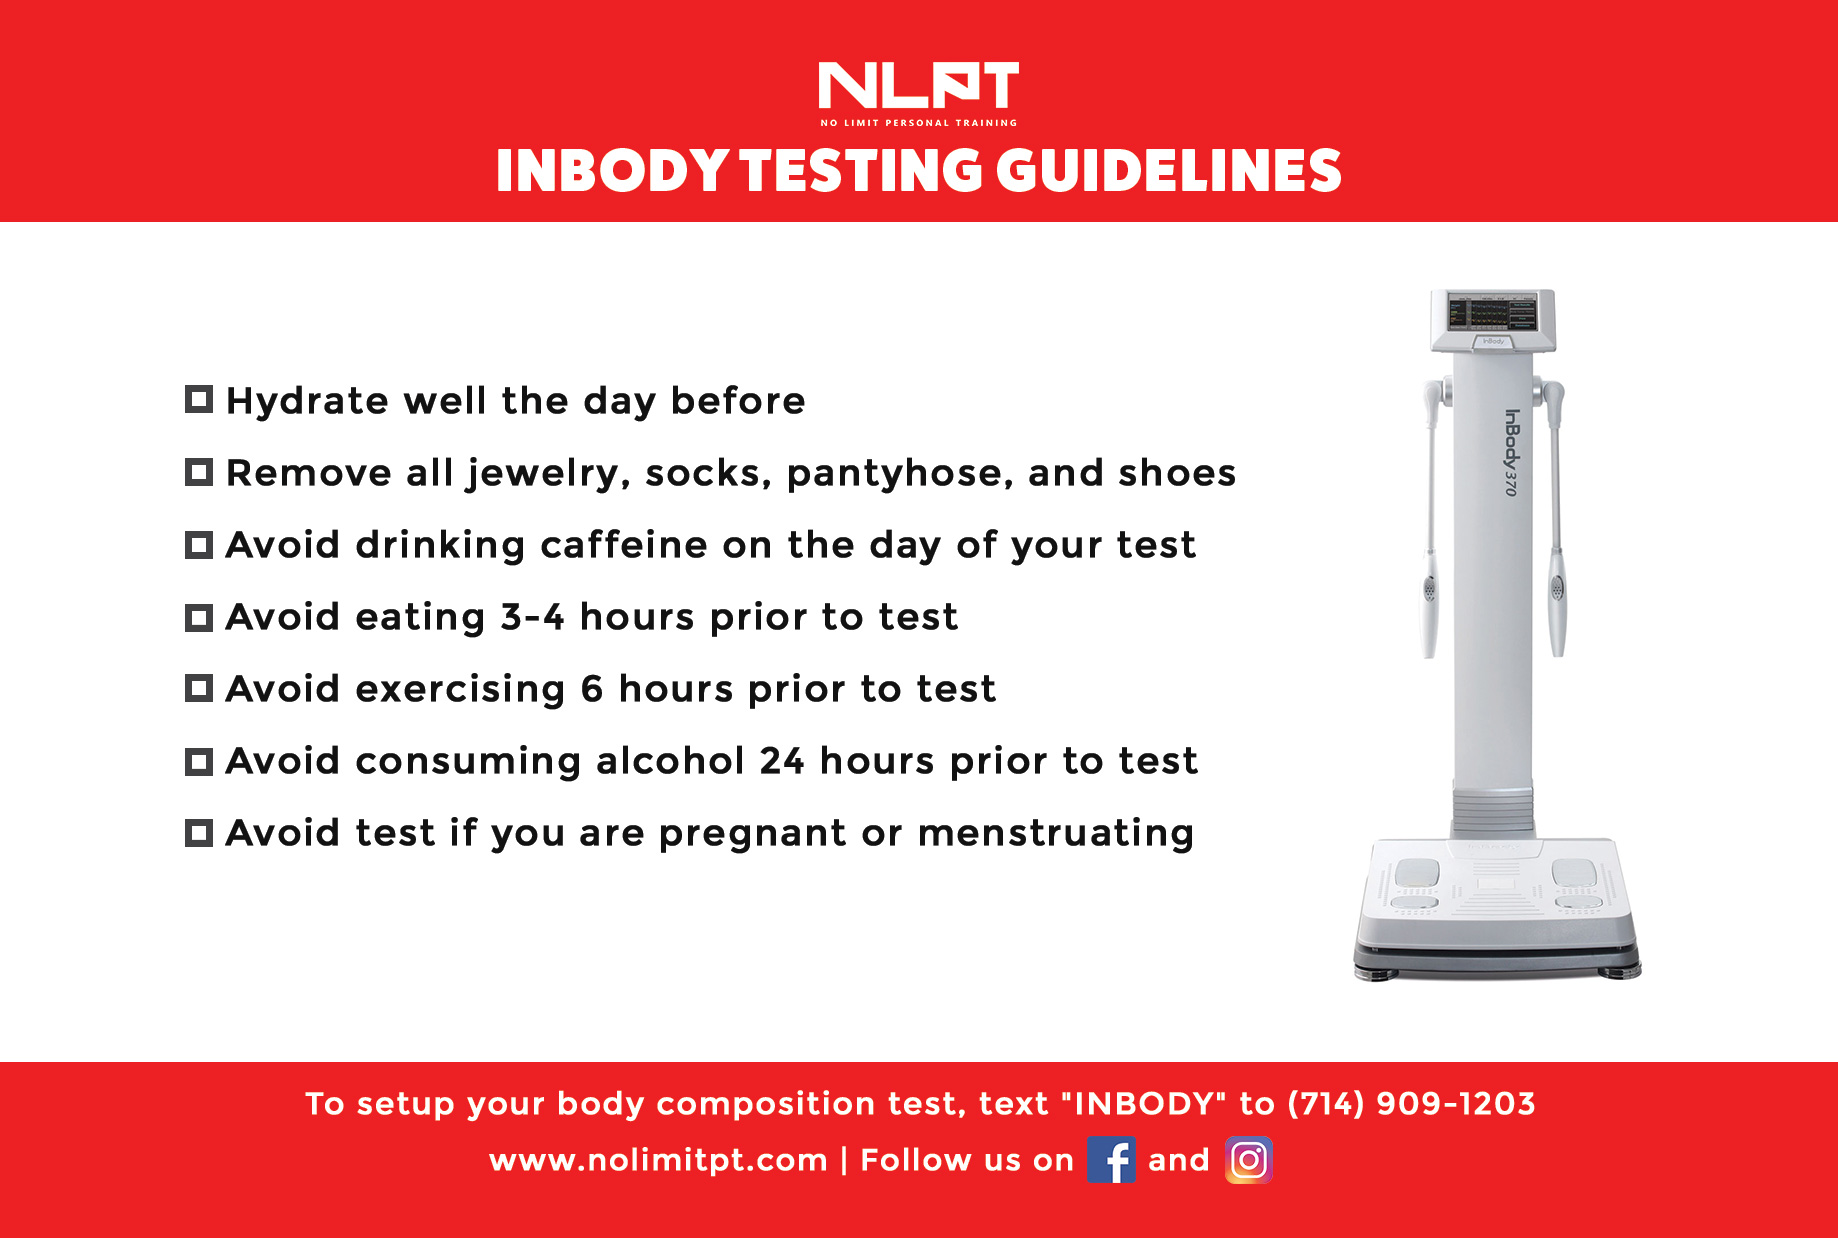 InBody Testing Guidelines